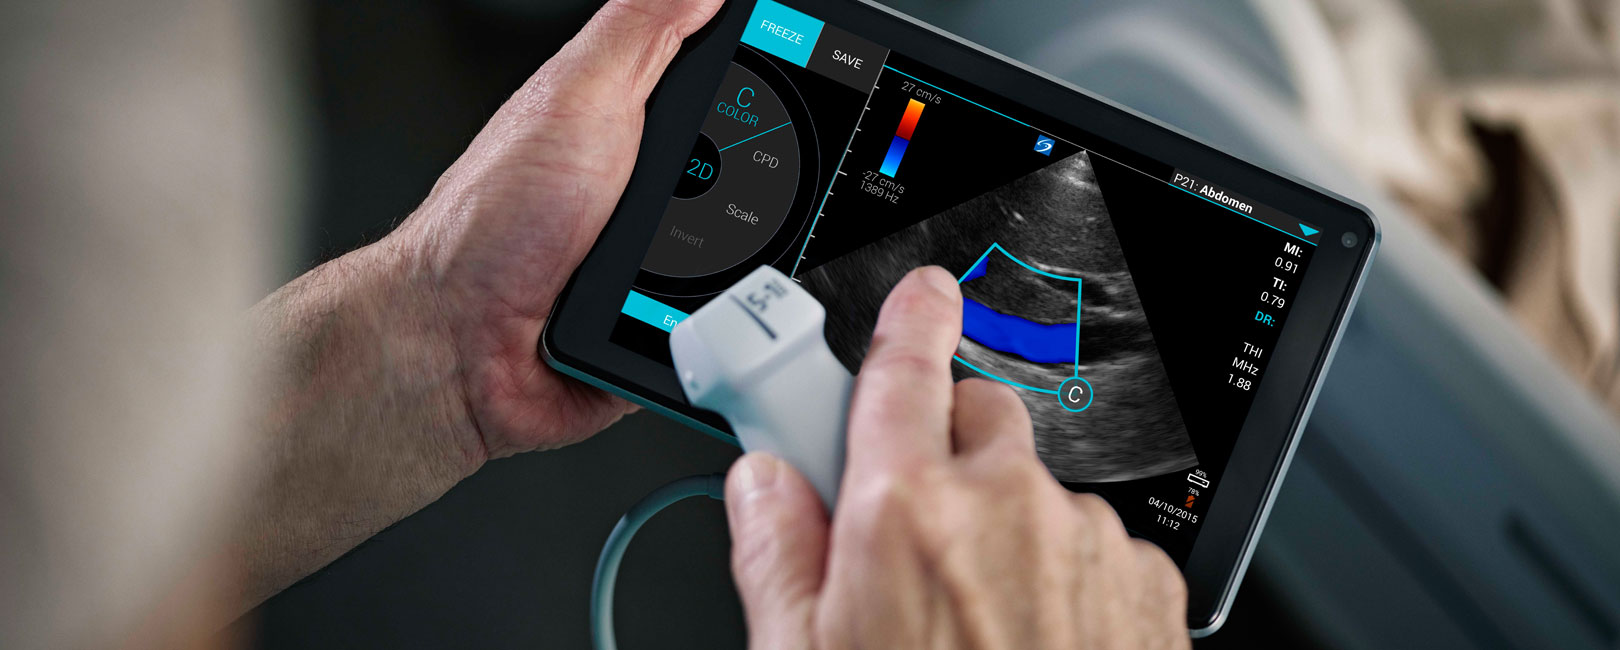 [photo] Hands holding touchscreen and transducer, while interacting with touchscreen with ultrasound image on screen